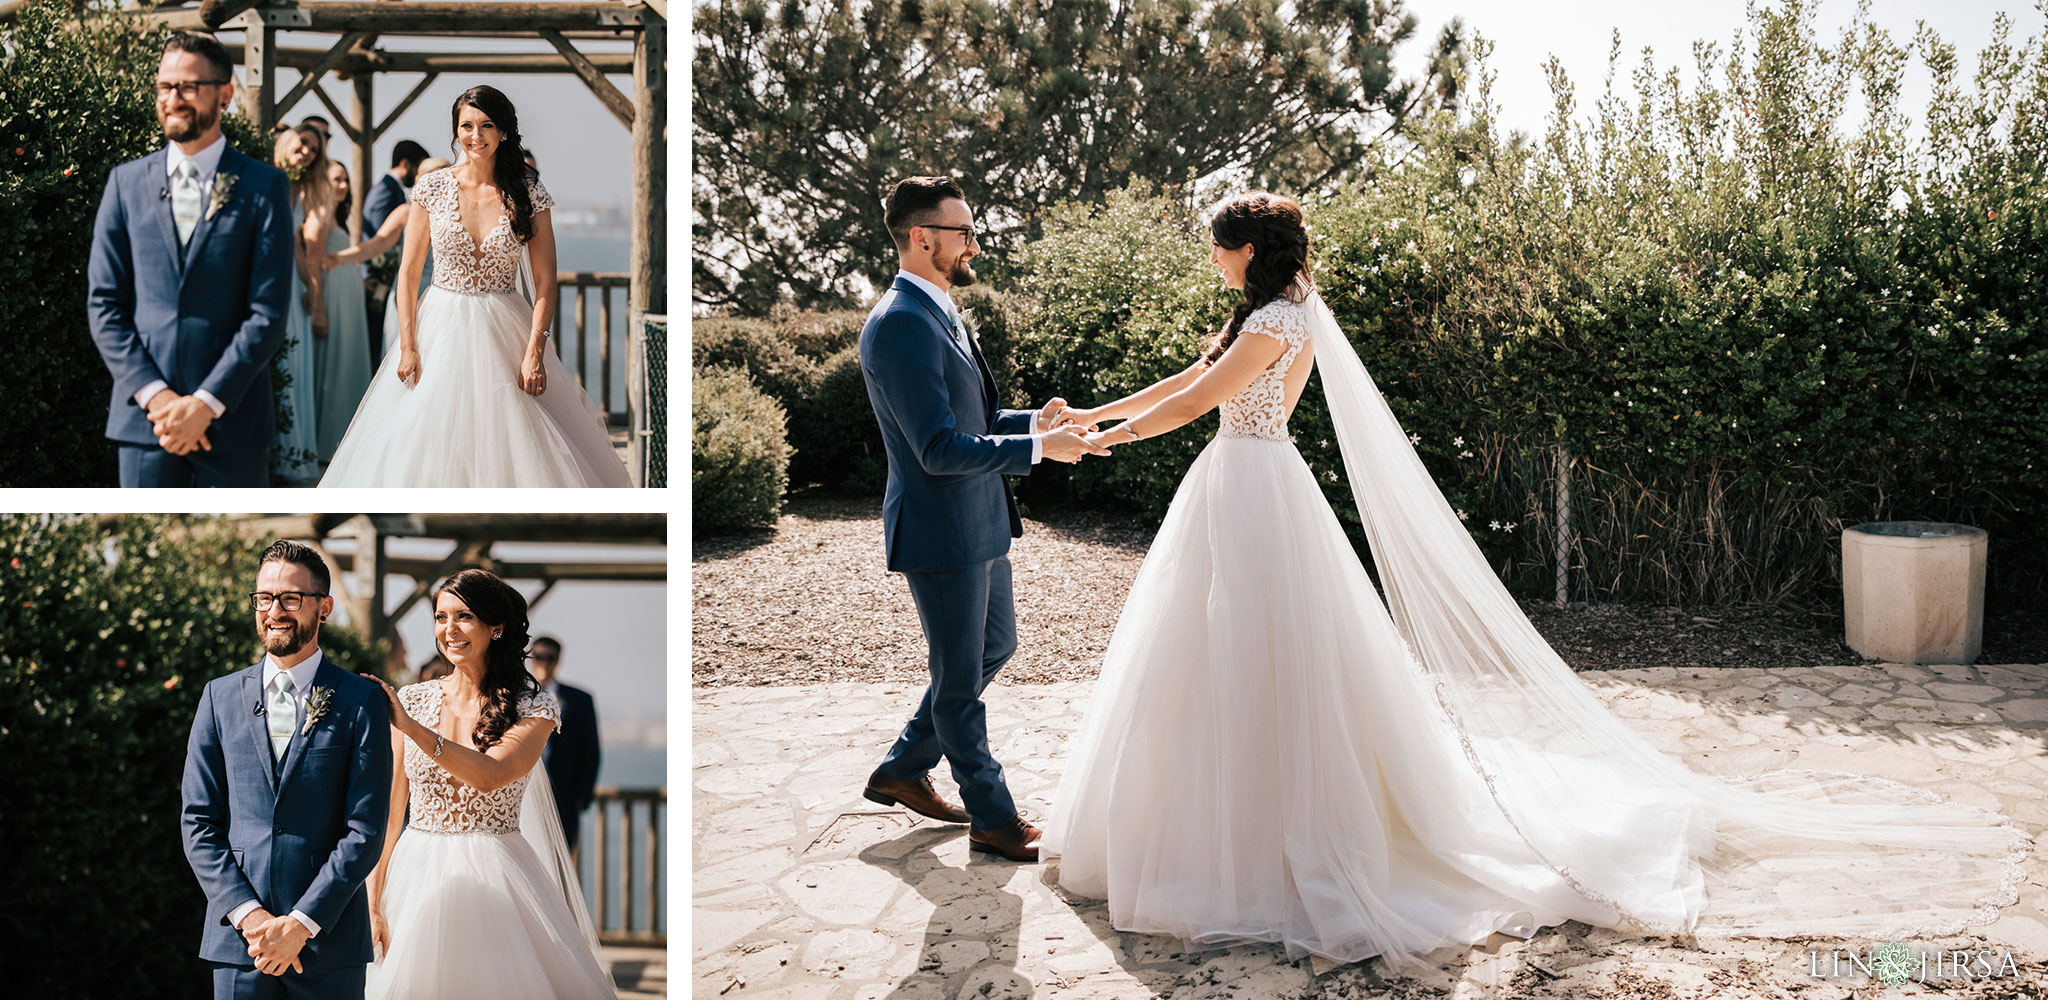 015 los verdes golf course wedding first look photography